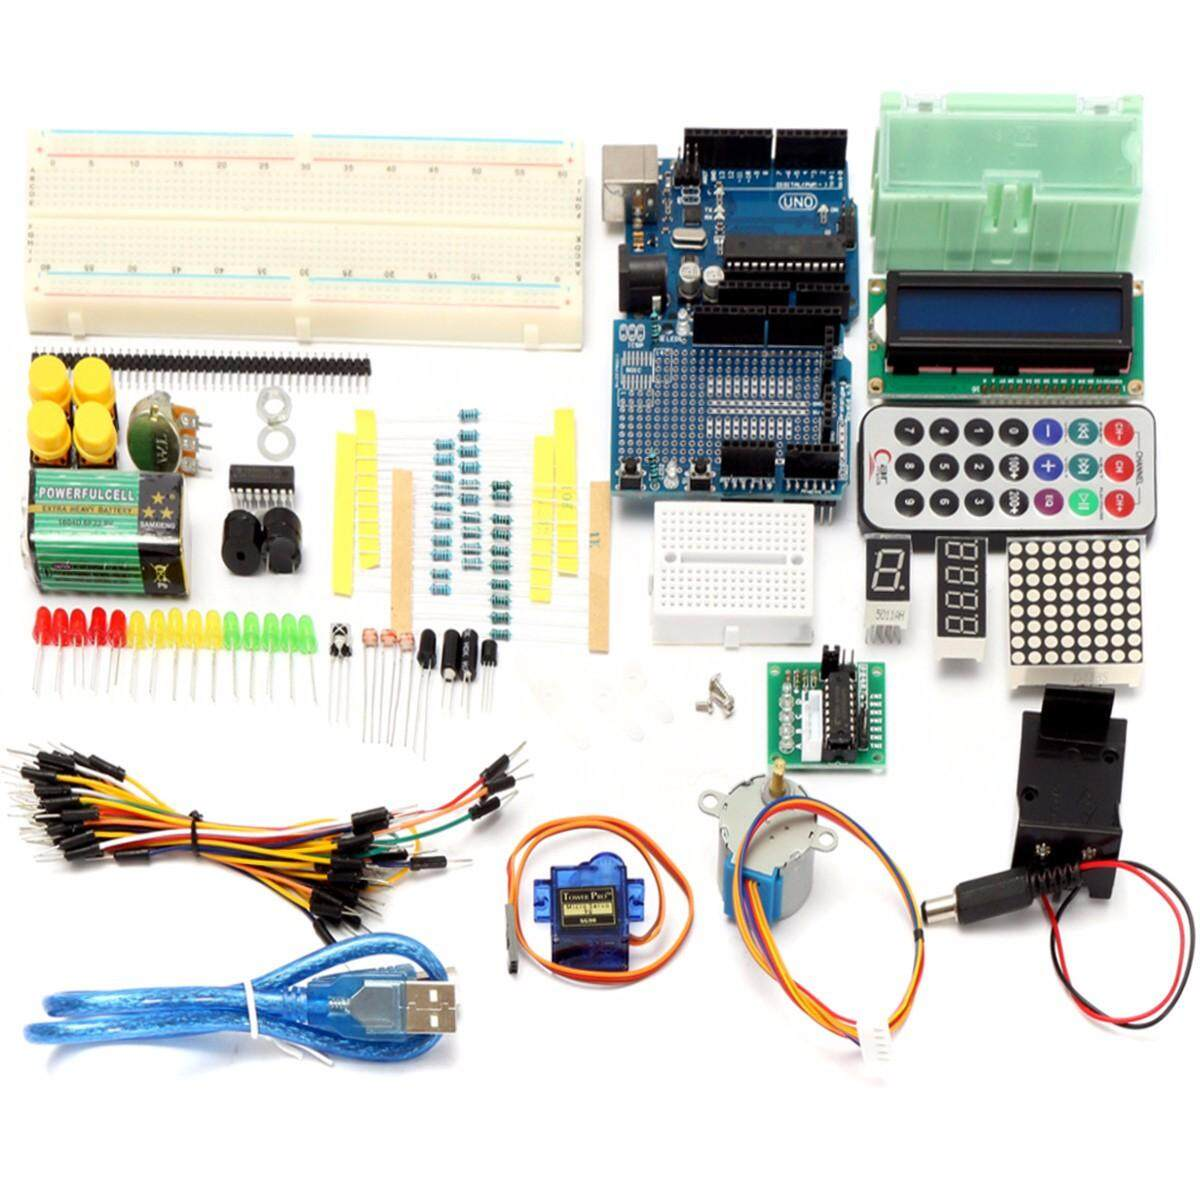 【Free Shipping + Flash Deal】Ultimate Learning Starter Kit For Arduino UNO R3 1602 LCD Servo Motor Relay US